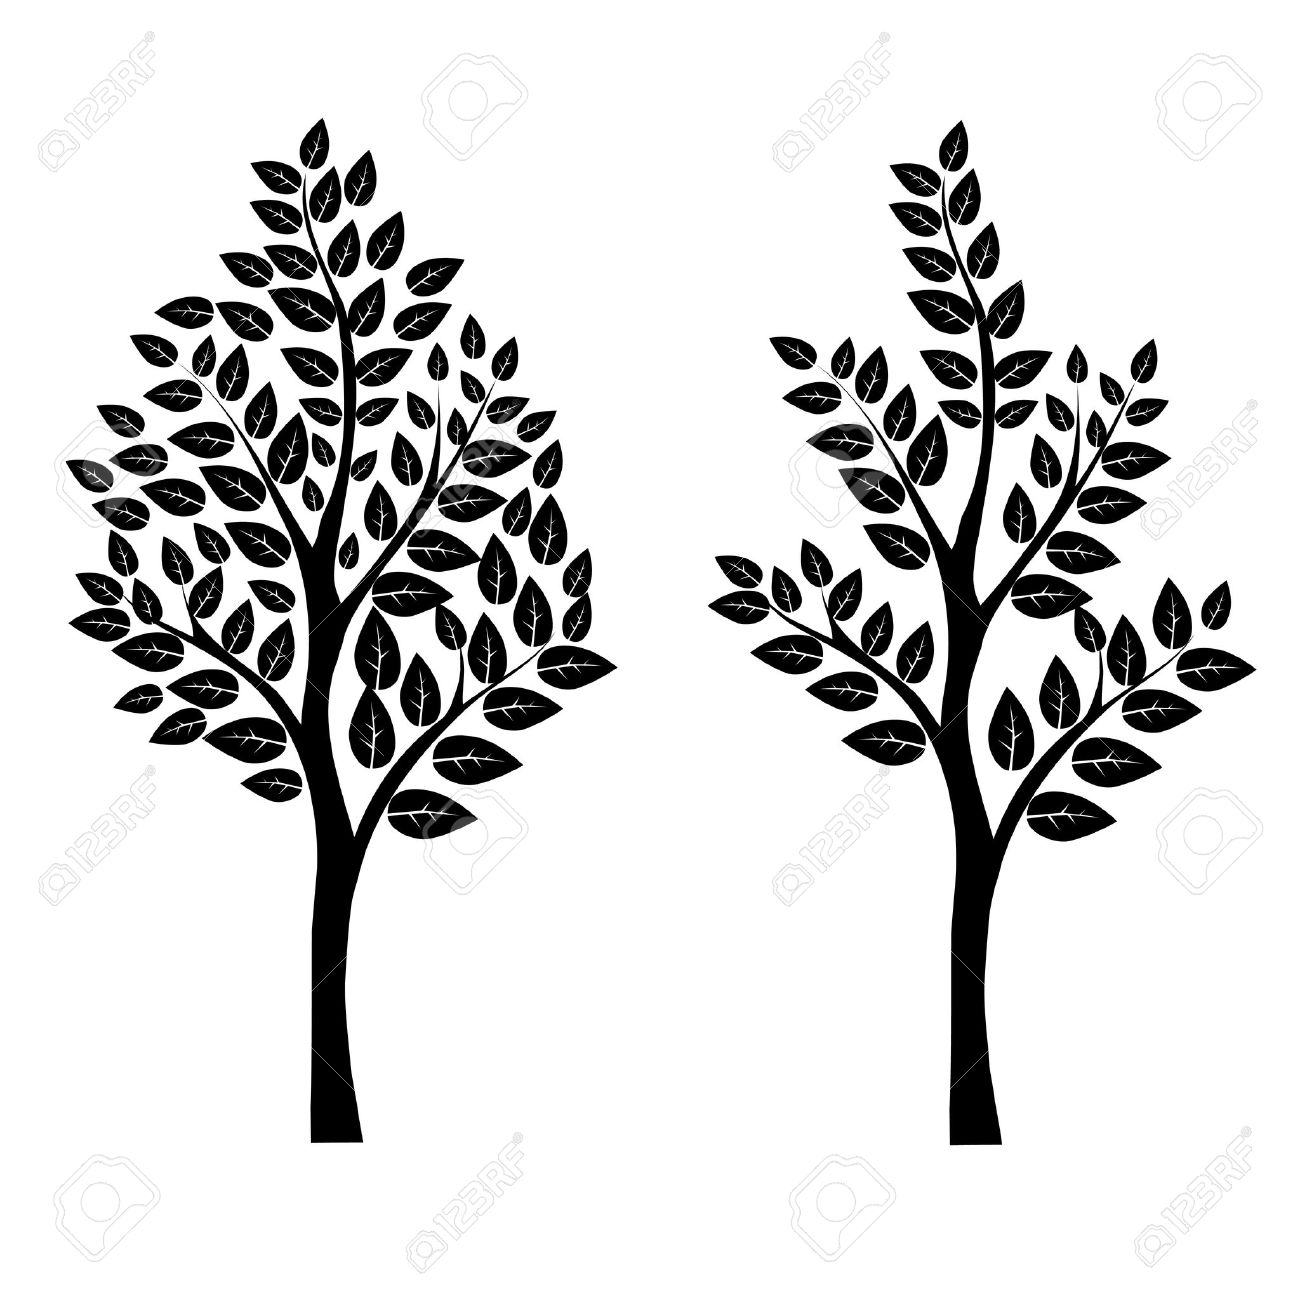 black tree vector art eps 10 royalty free cliparts vectors and rh 123rf com royalty free vector artwork royalty-free vector clipart illustration